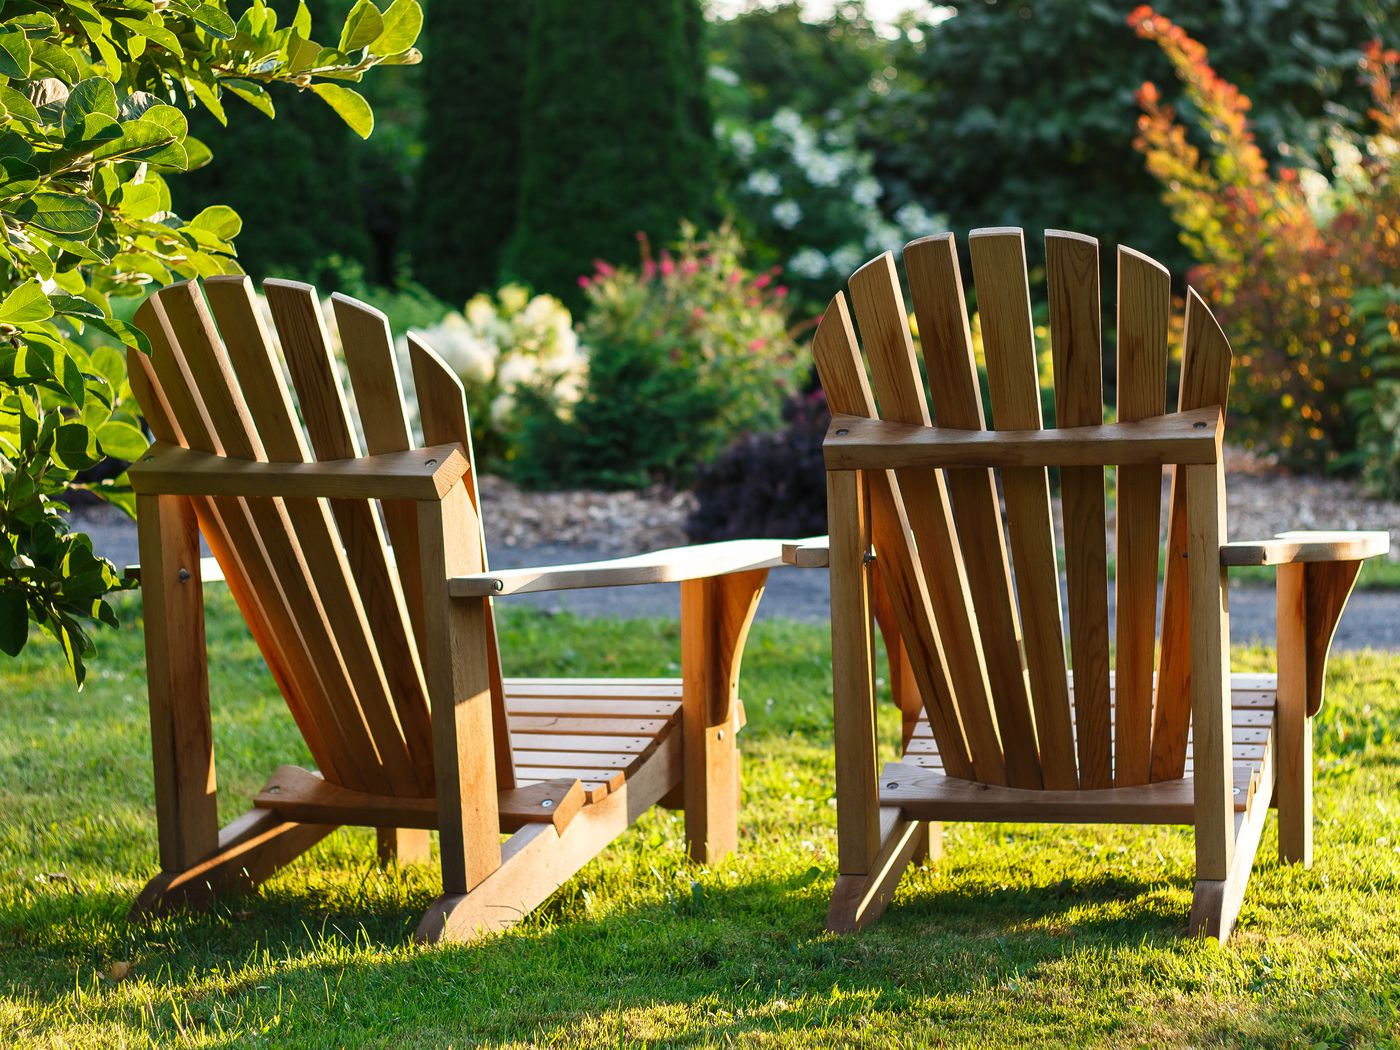 How To Build An Adirondack Chair This Old House